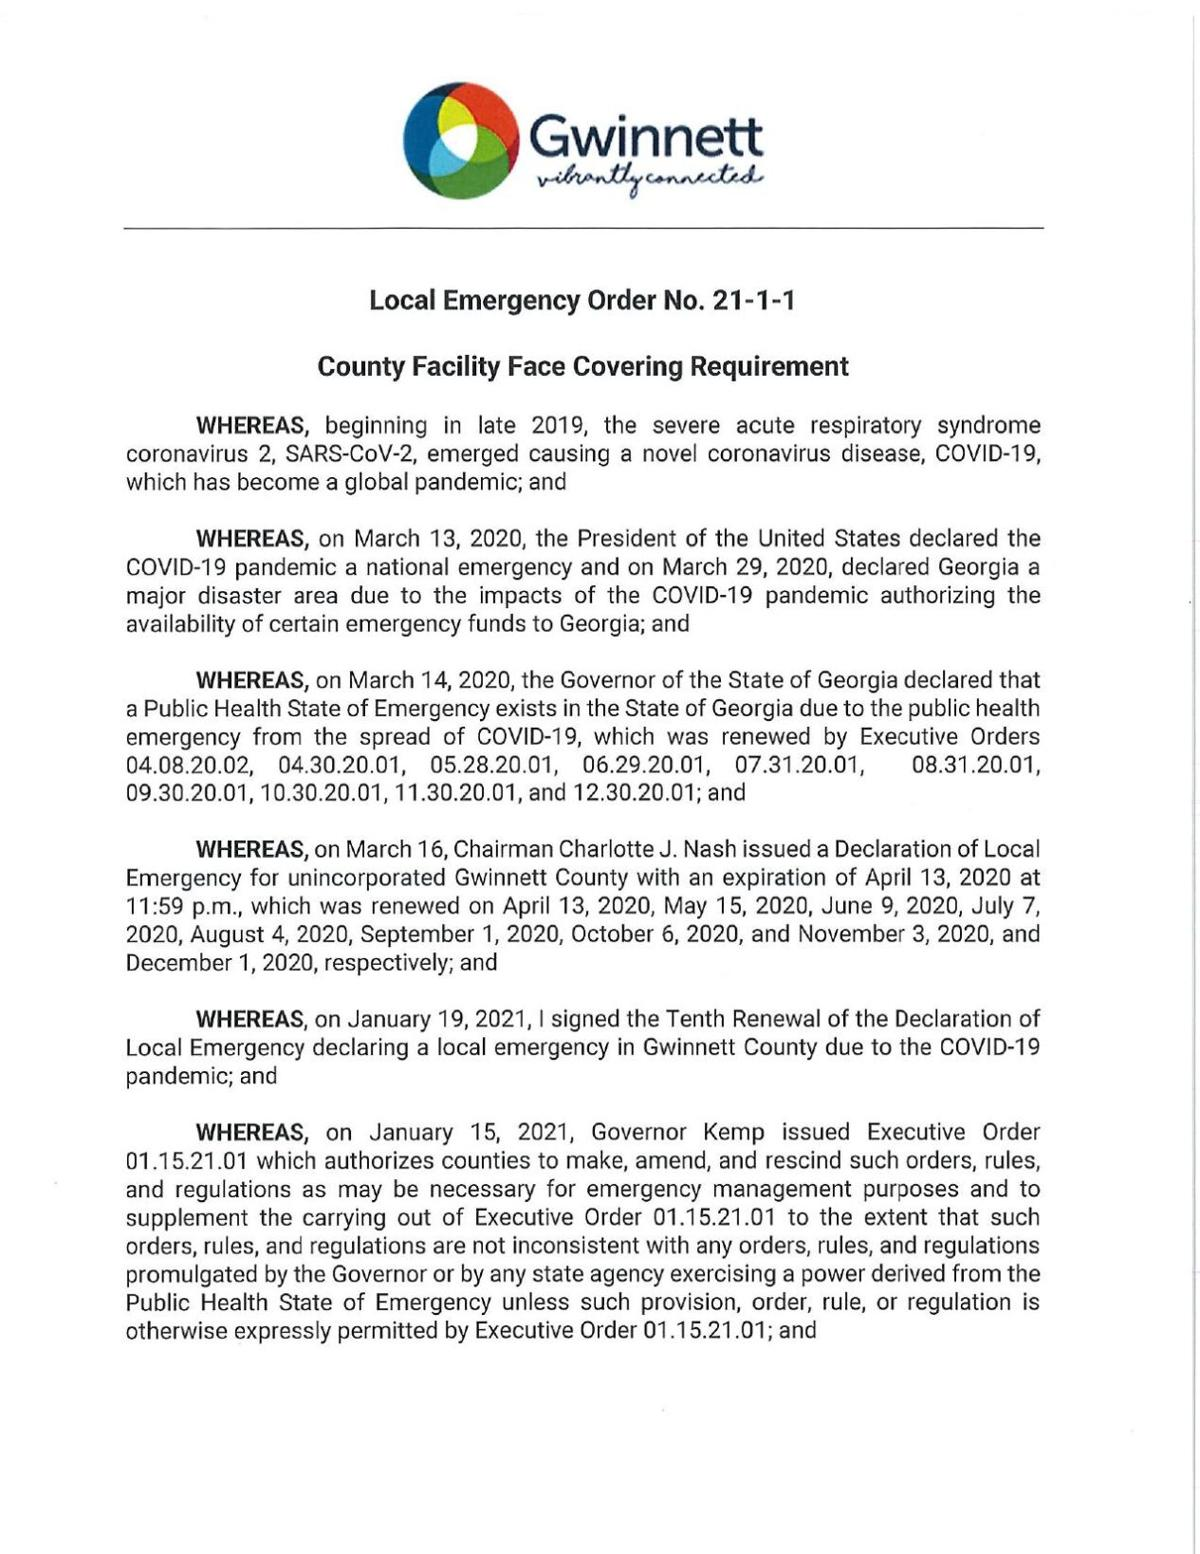 Gwinnett County face mask executive order